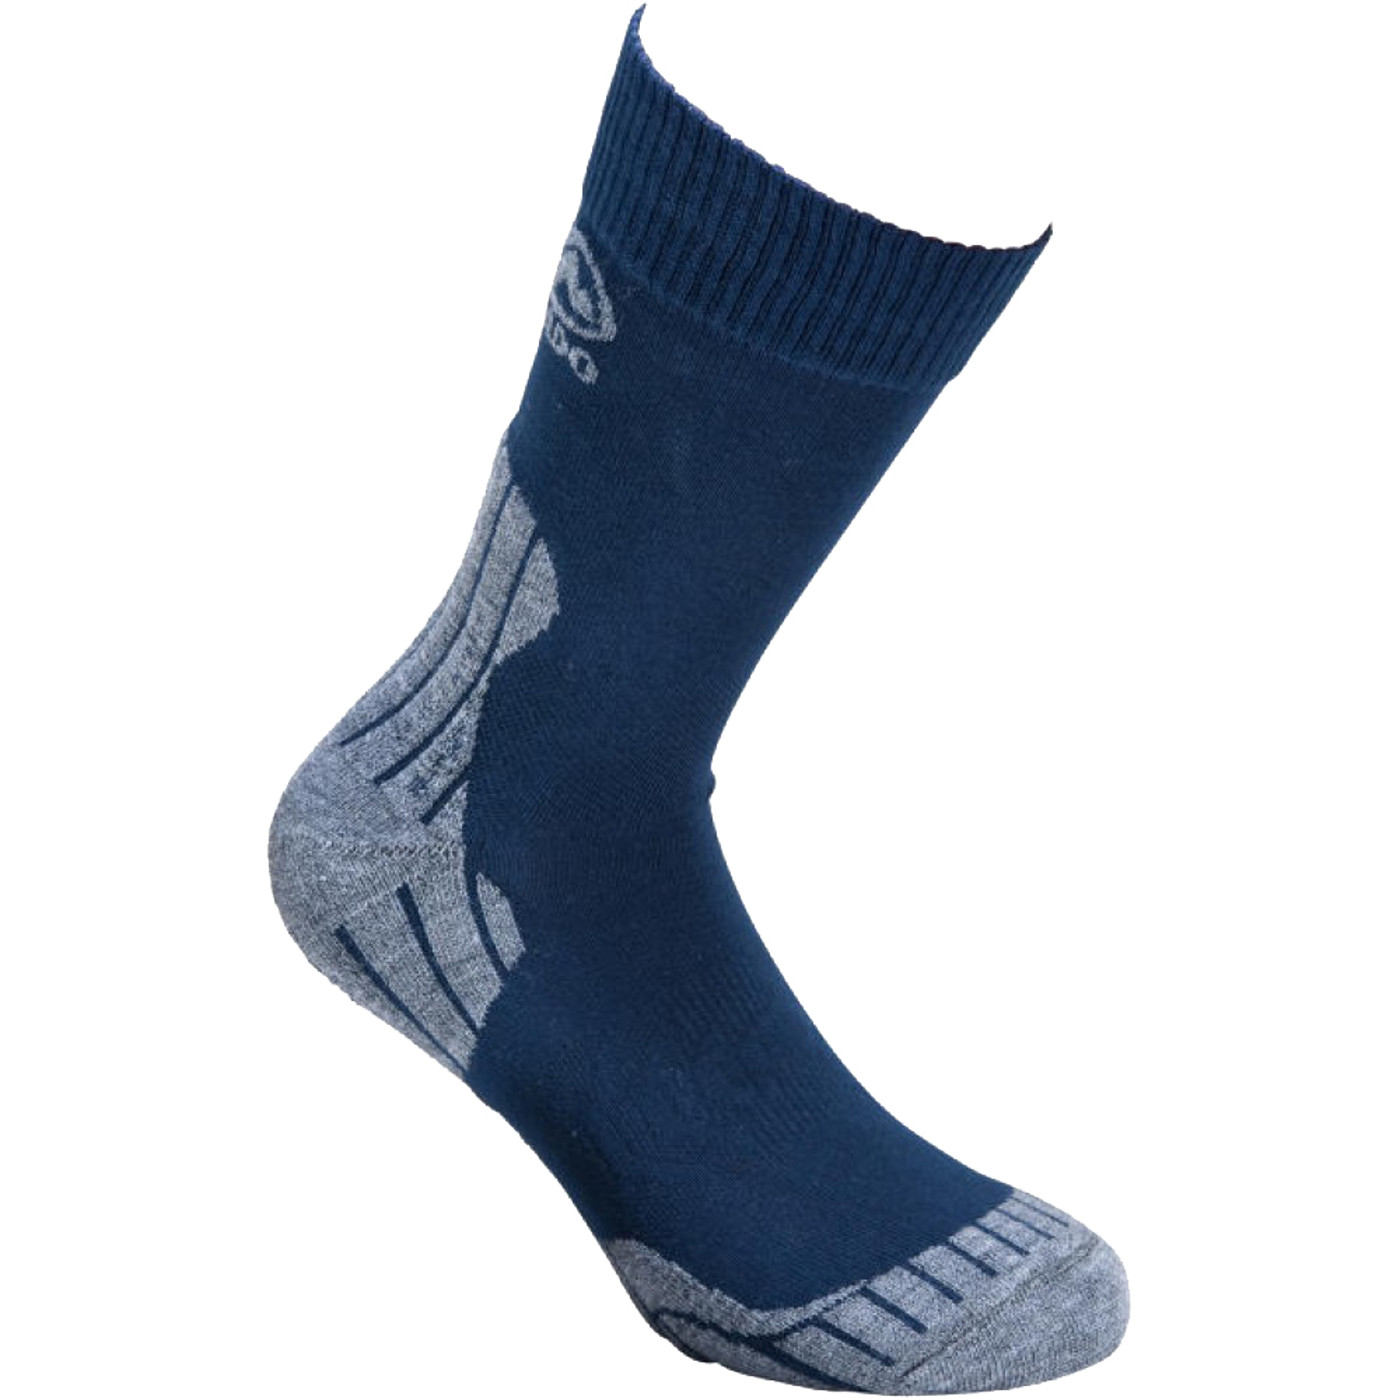 HIGH COLORADO Trekkingsocken HC LIGHT - Kinder